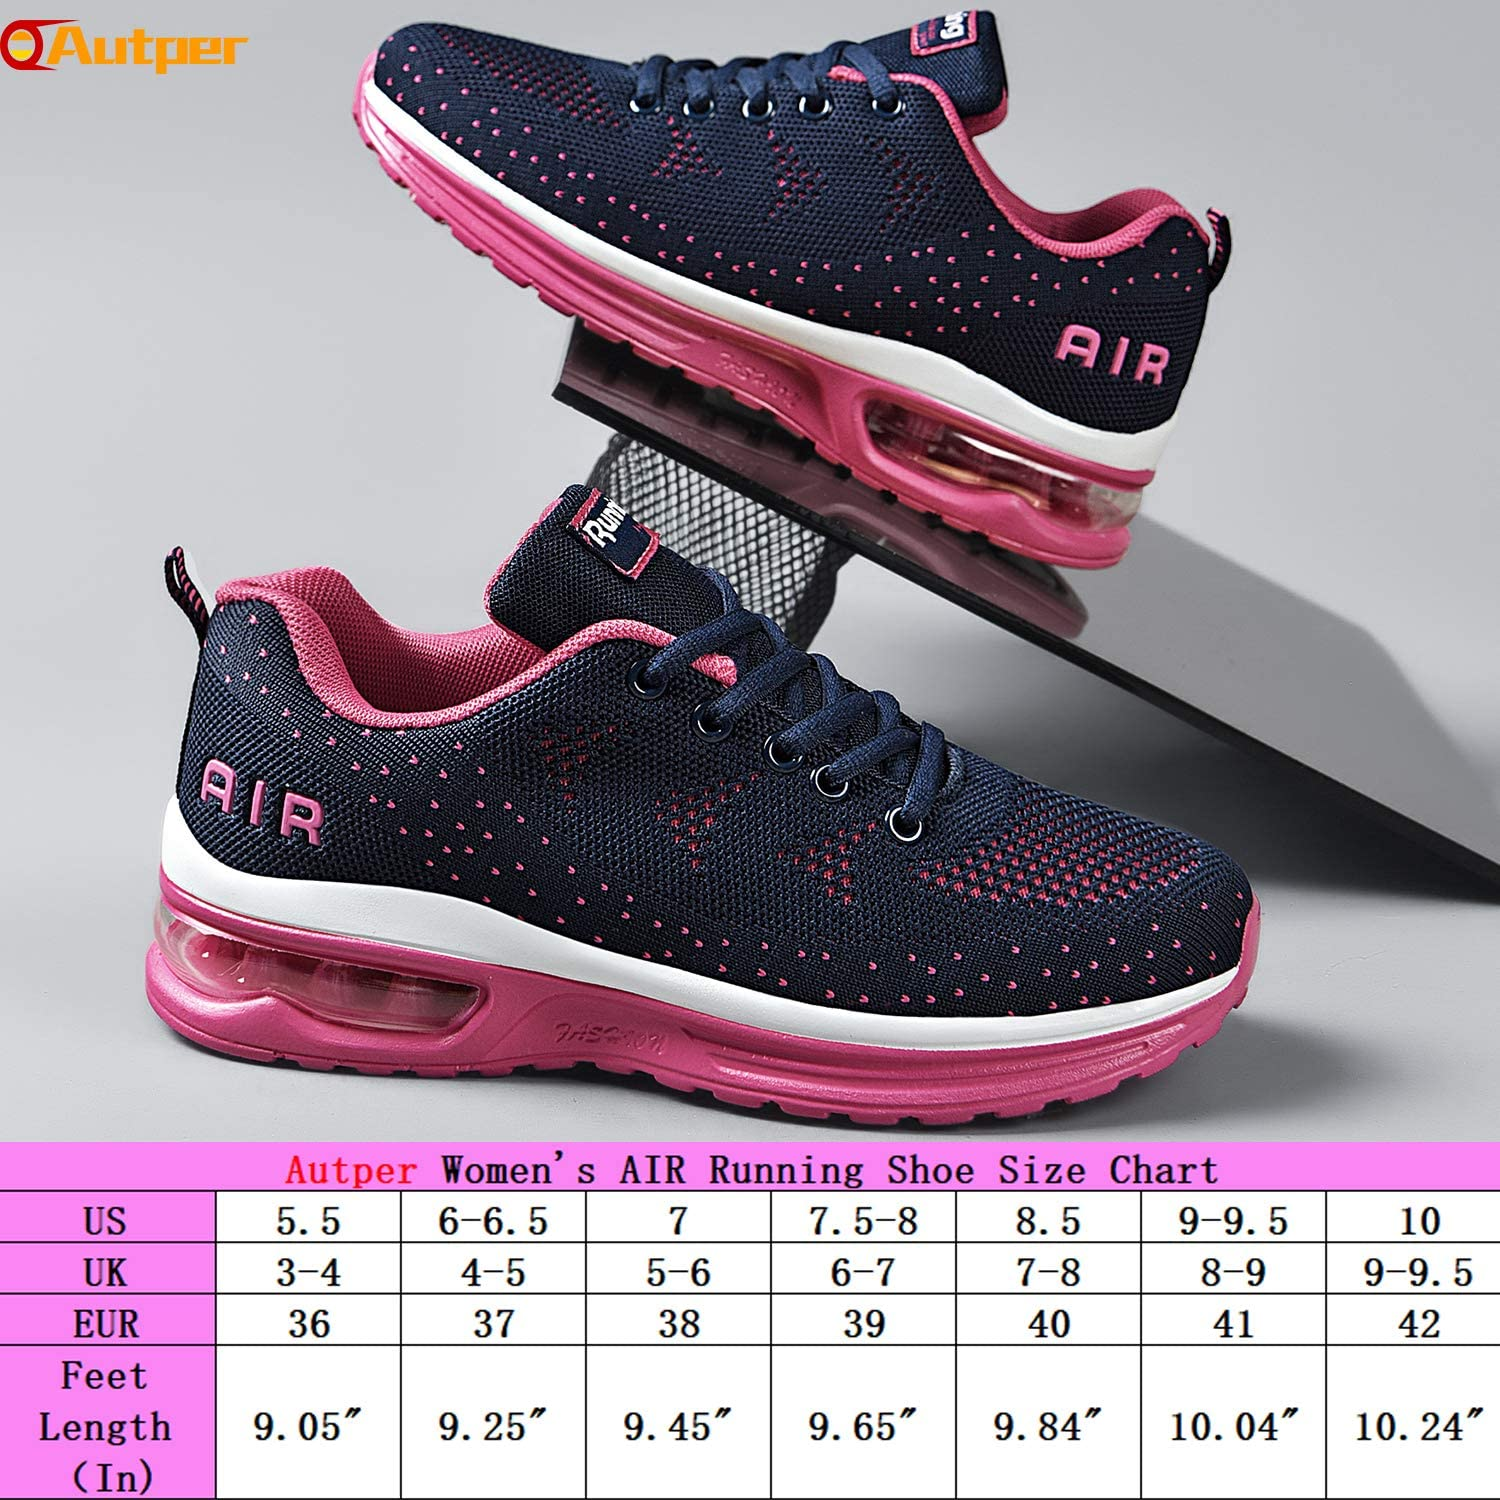 Autper Womens Air Athletic Tennis Running Sneakers Lightweight Sport Gym Jogging Breathable Fashion Walking Shoes US 5.5-10 /…